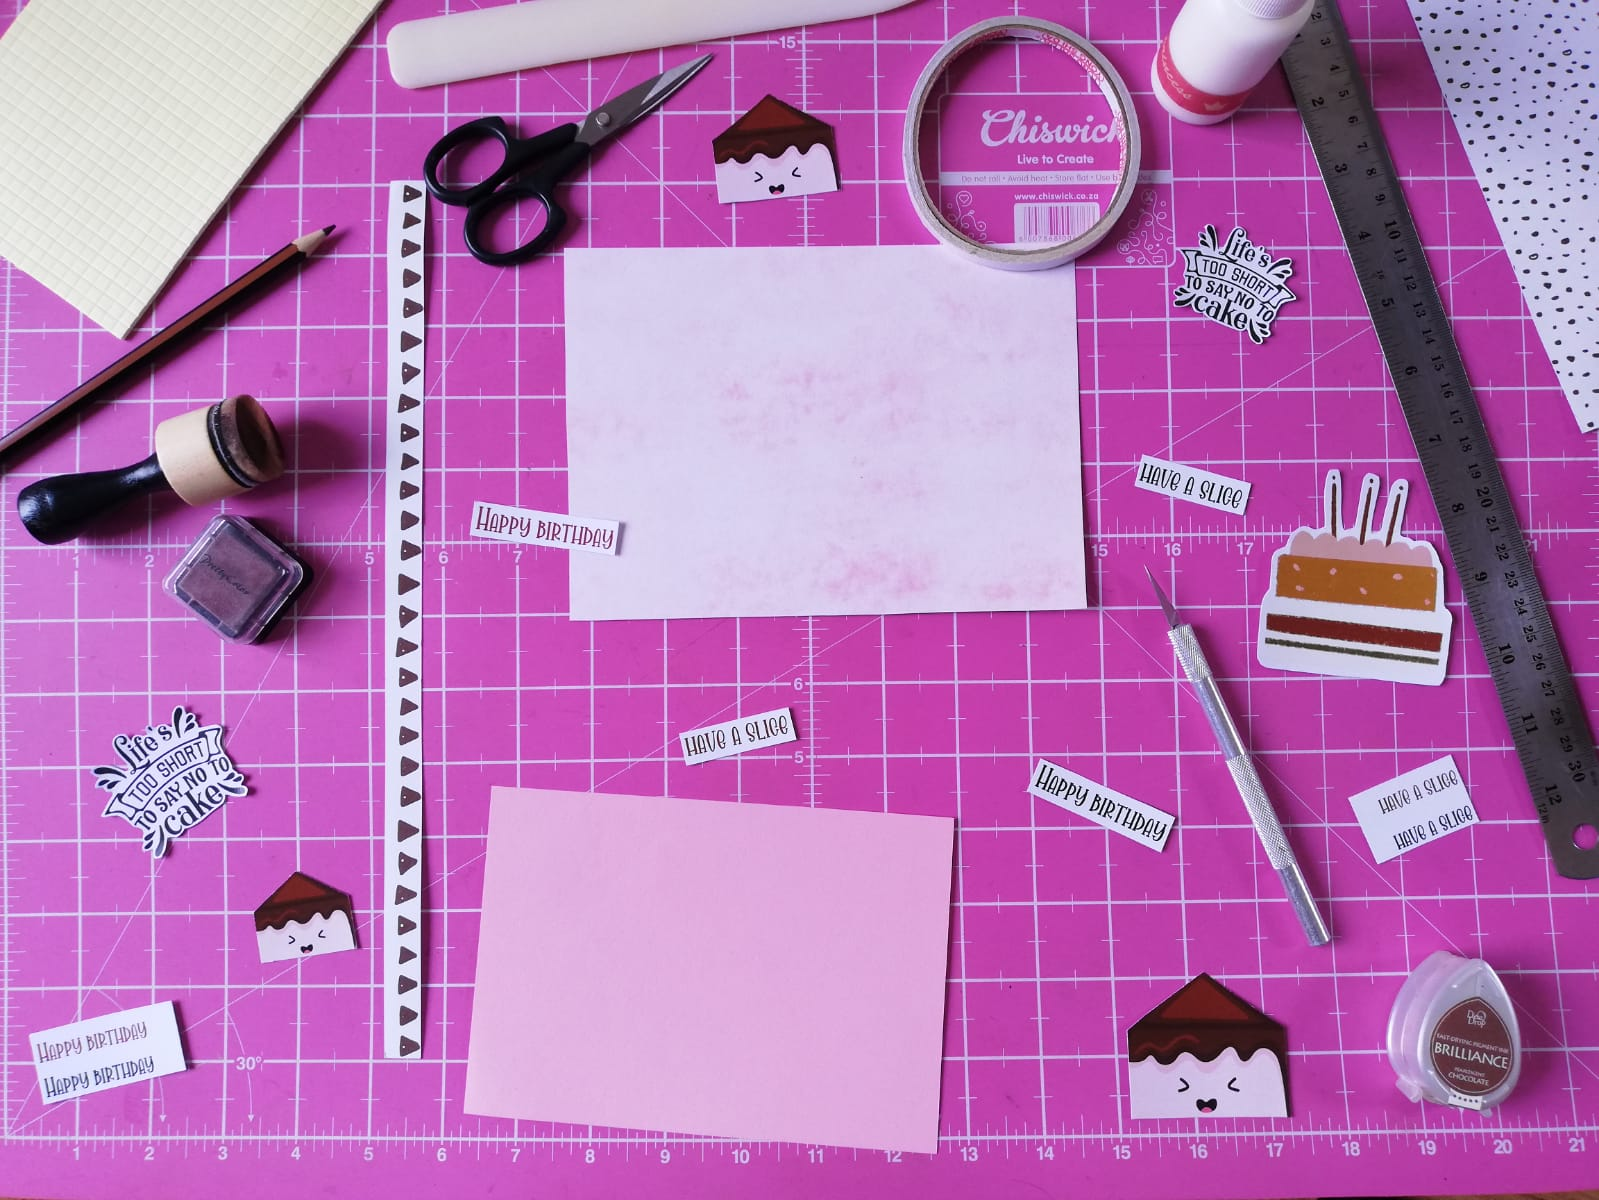 Supplies used to make card